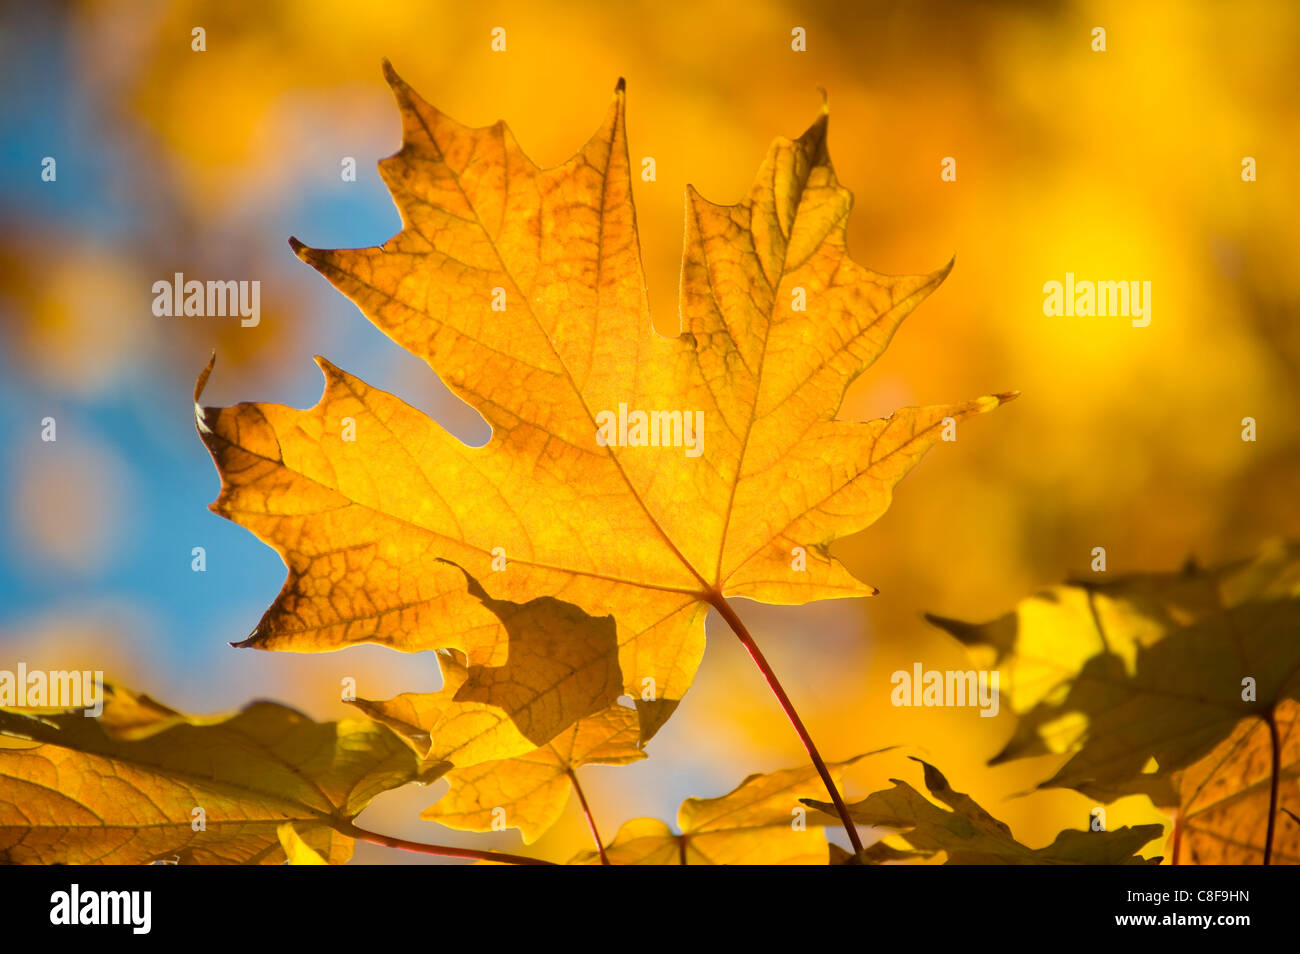 Feuilles d'érable jaune vif en automne, New York, New England, United States of America Photo Stock